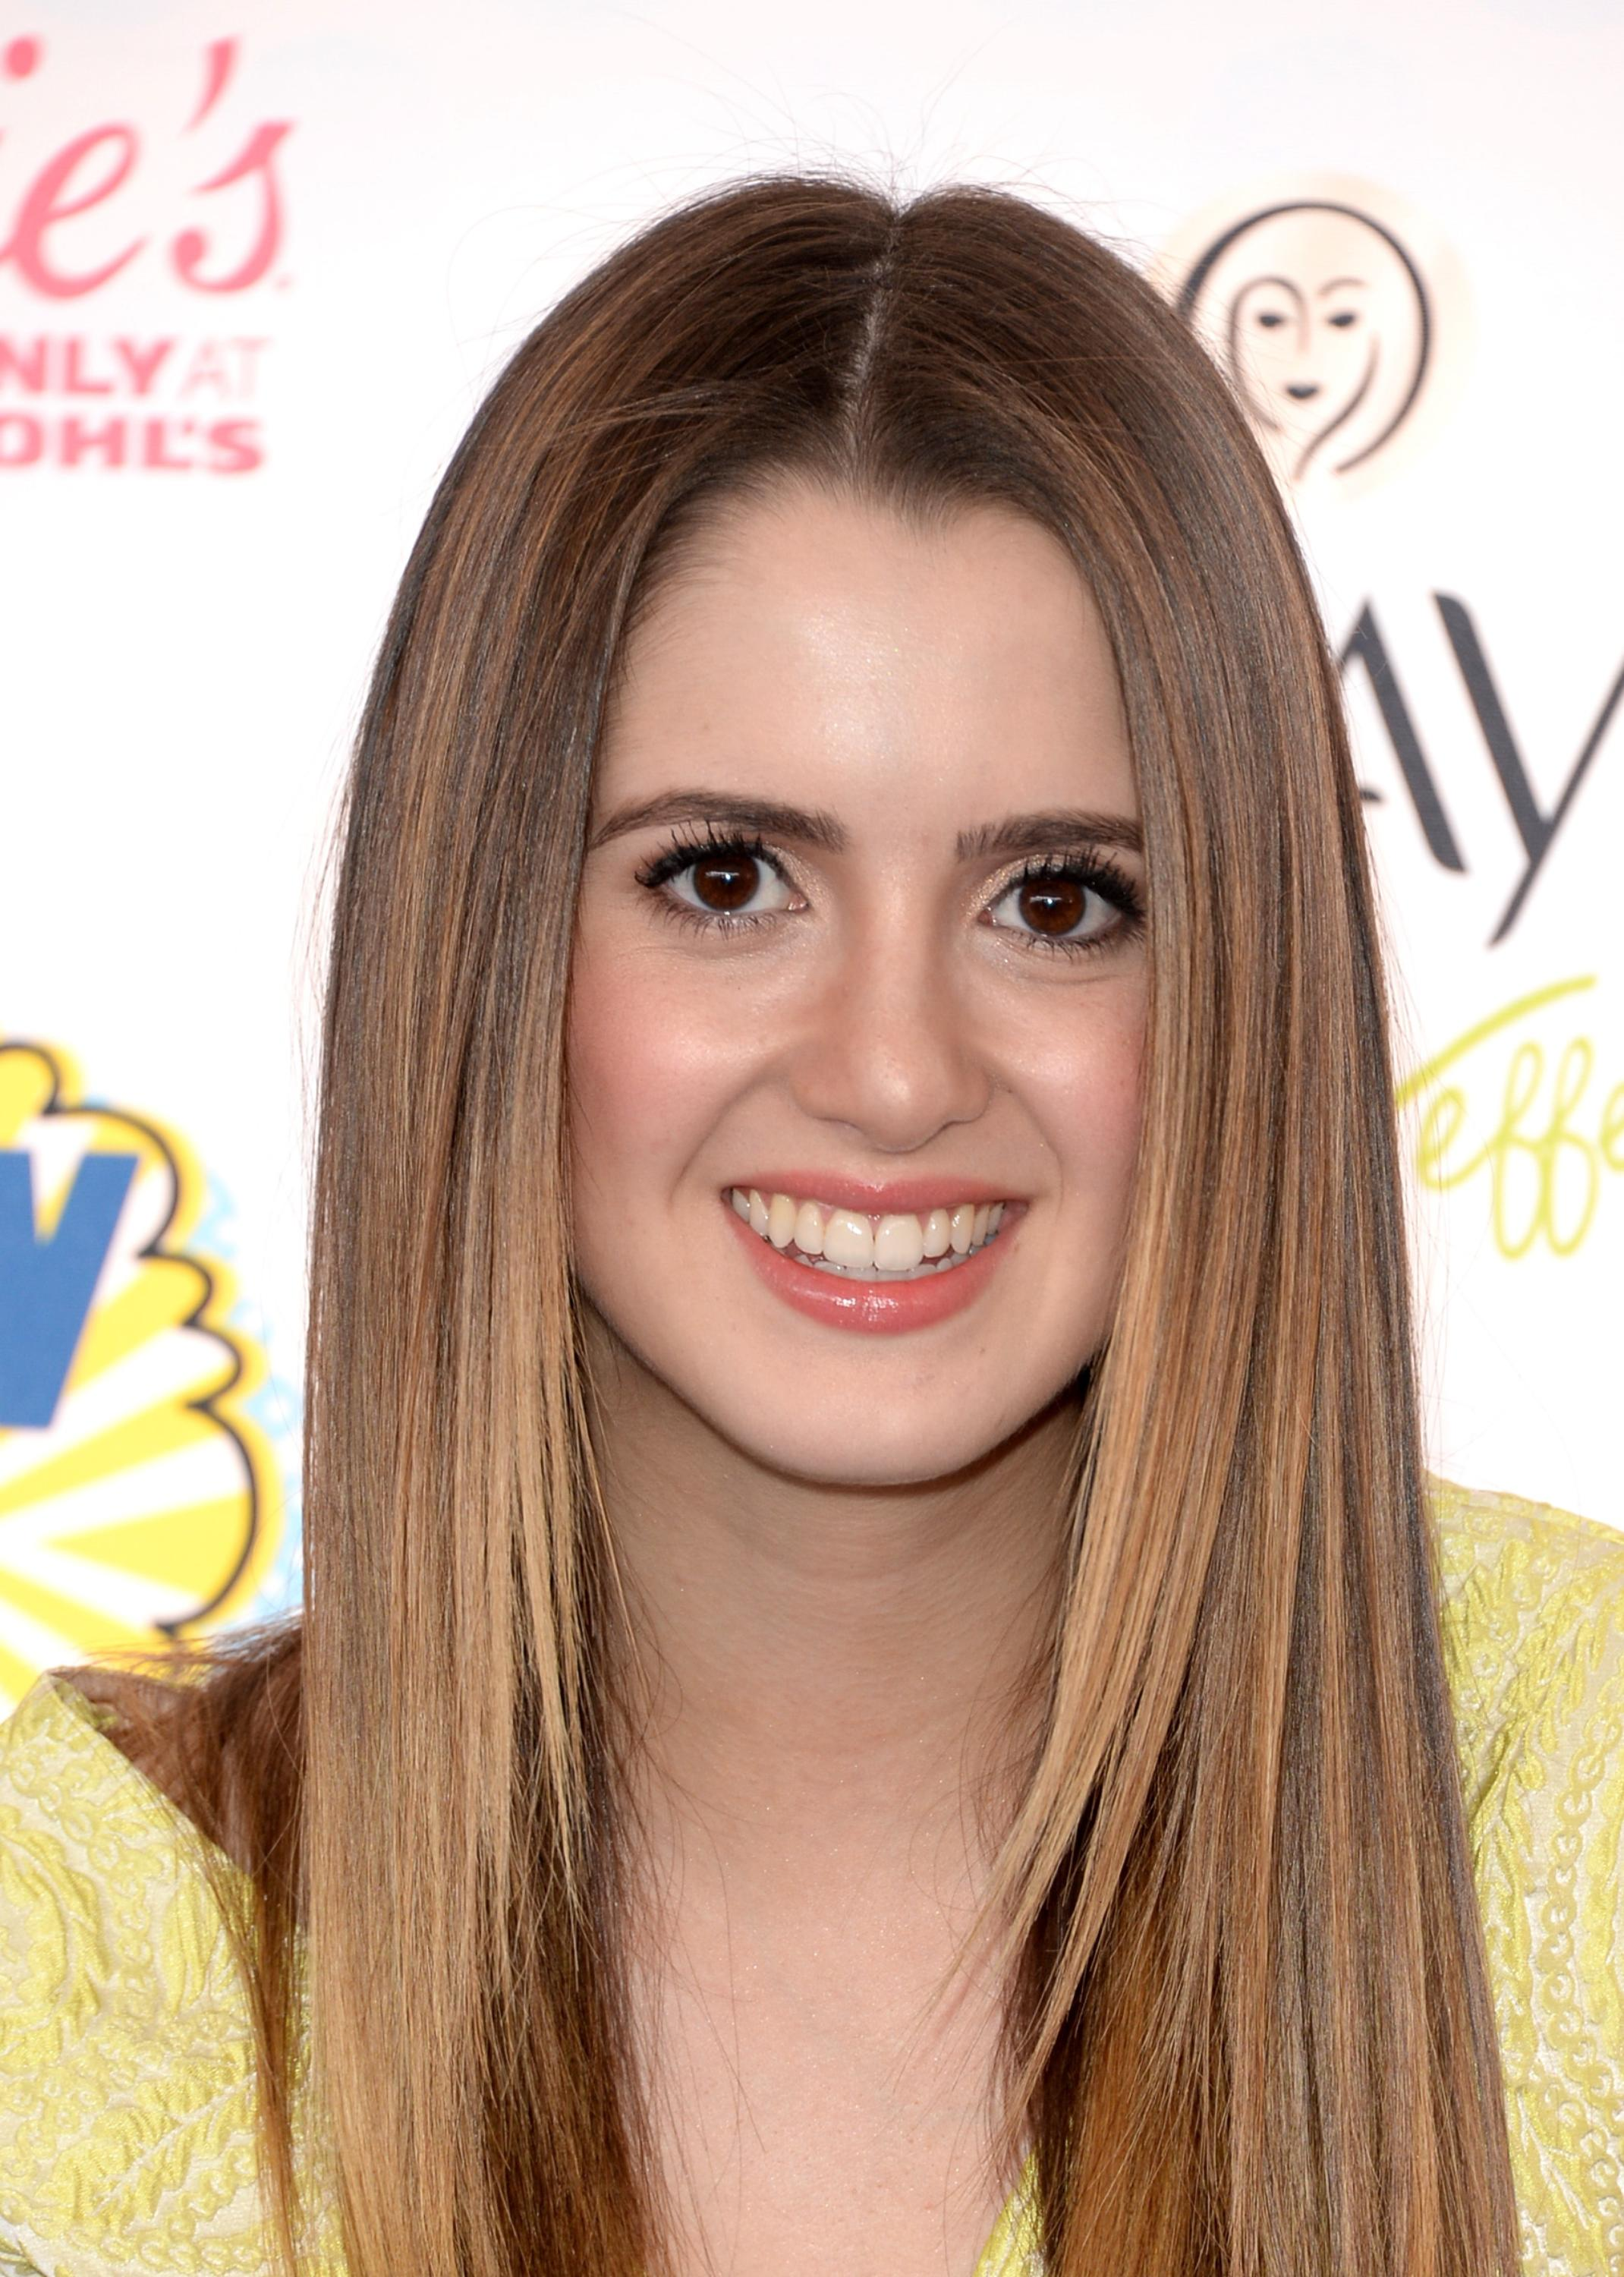 Laura Marano attending the 2014 Teen Choice Awards in Los Angeles on August 10, 2014